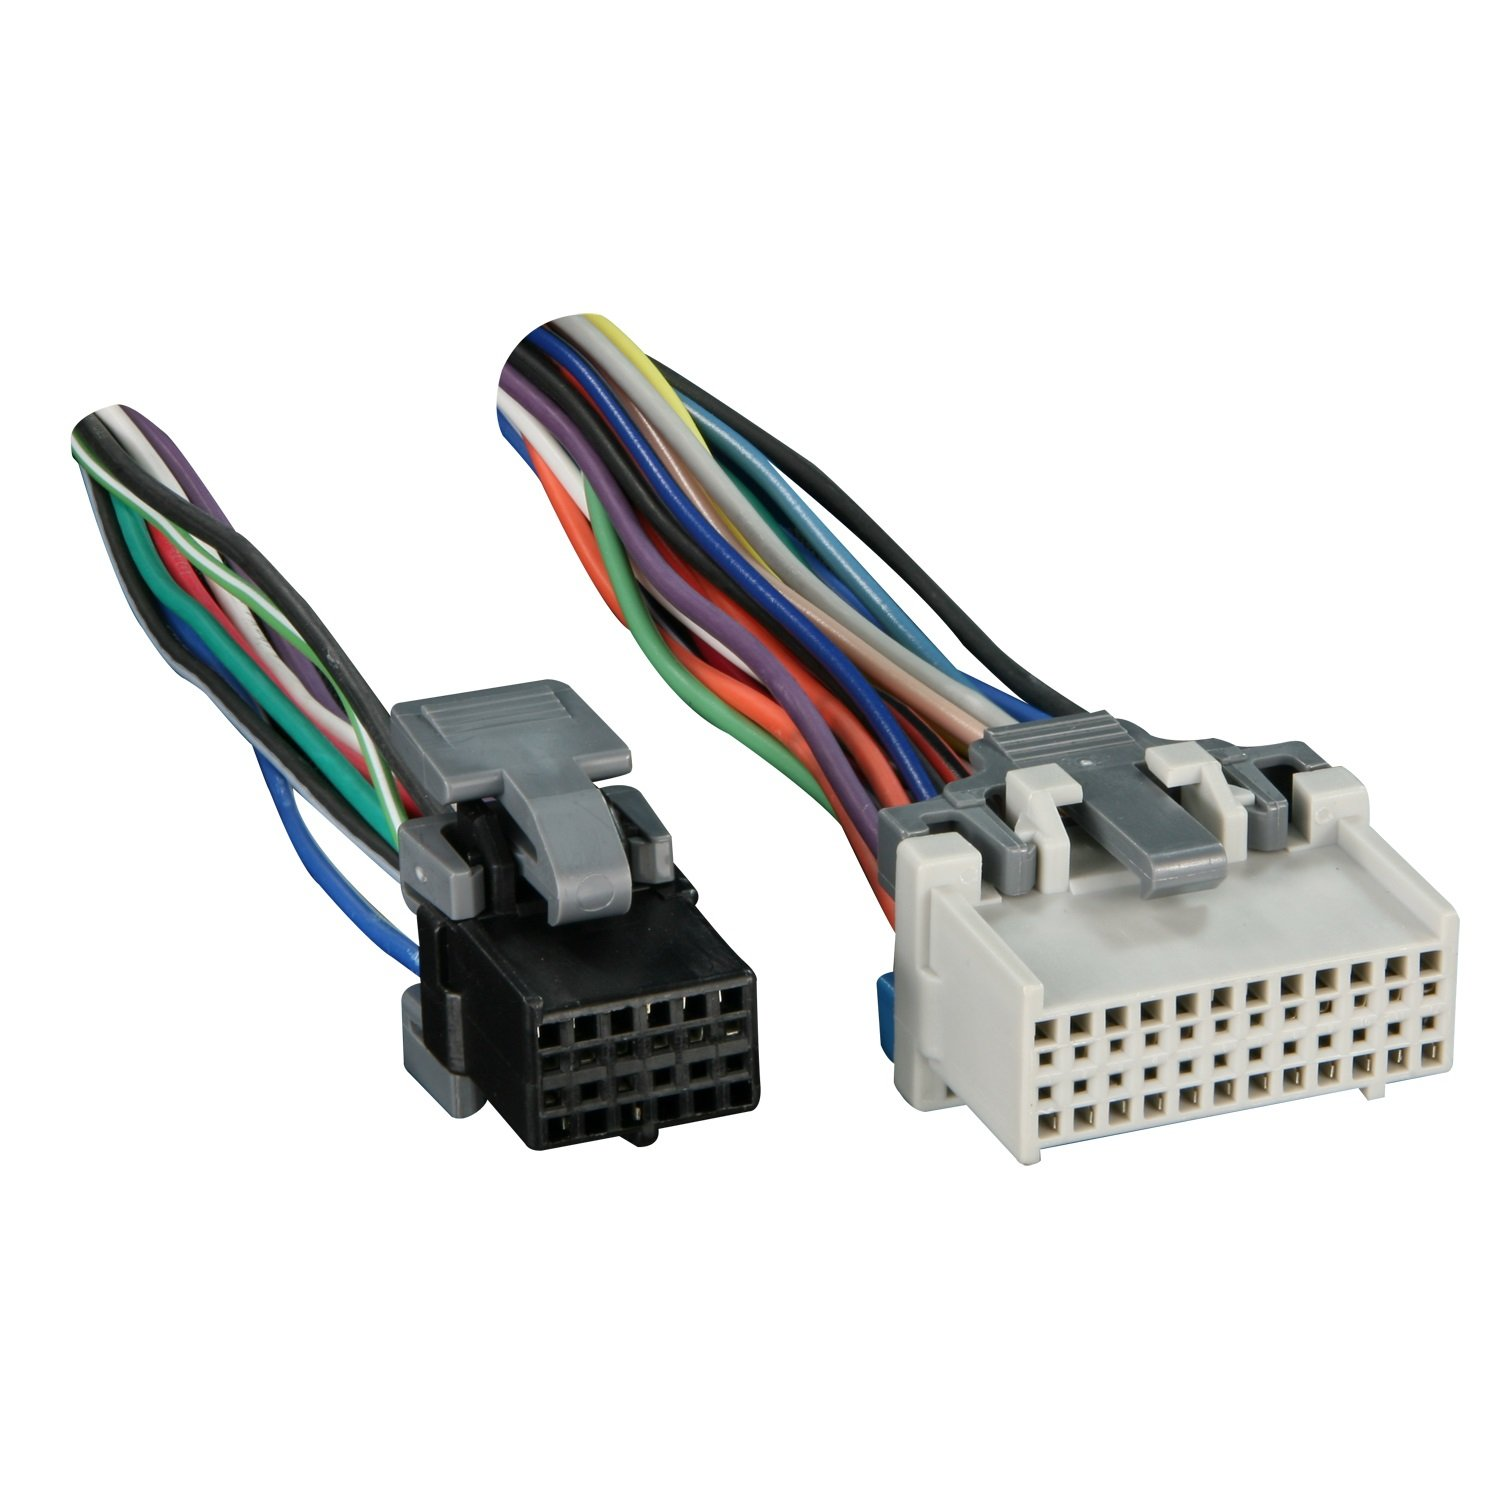 711log4bdML._SL1500_ amazon com metra turbowires 71 2003 1 wiring harness car electronics what is a wire harness in a car at cos-gaming.co